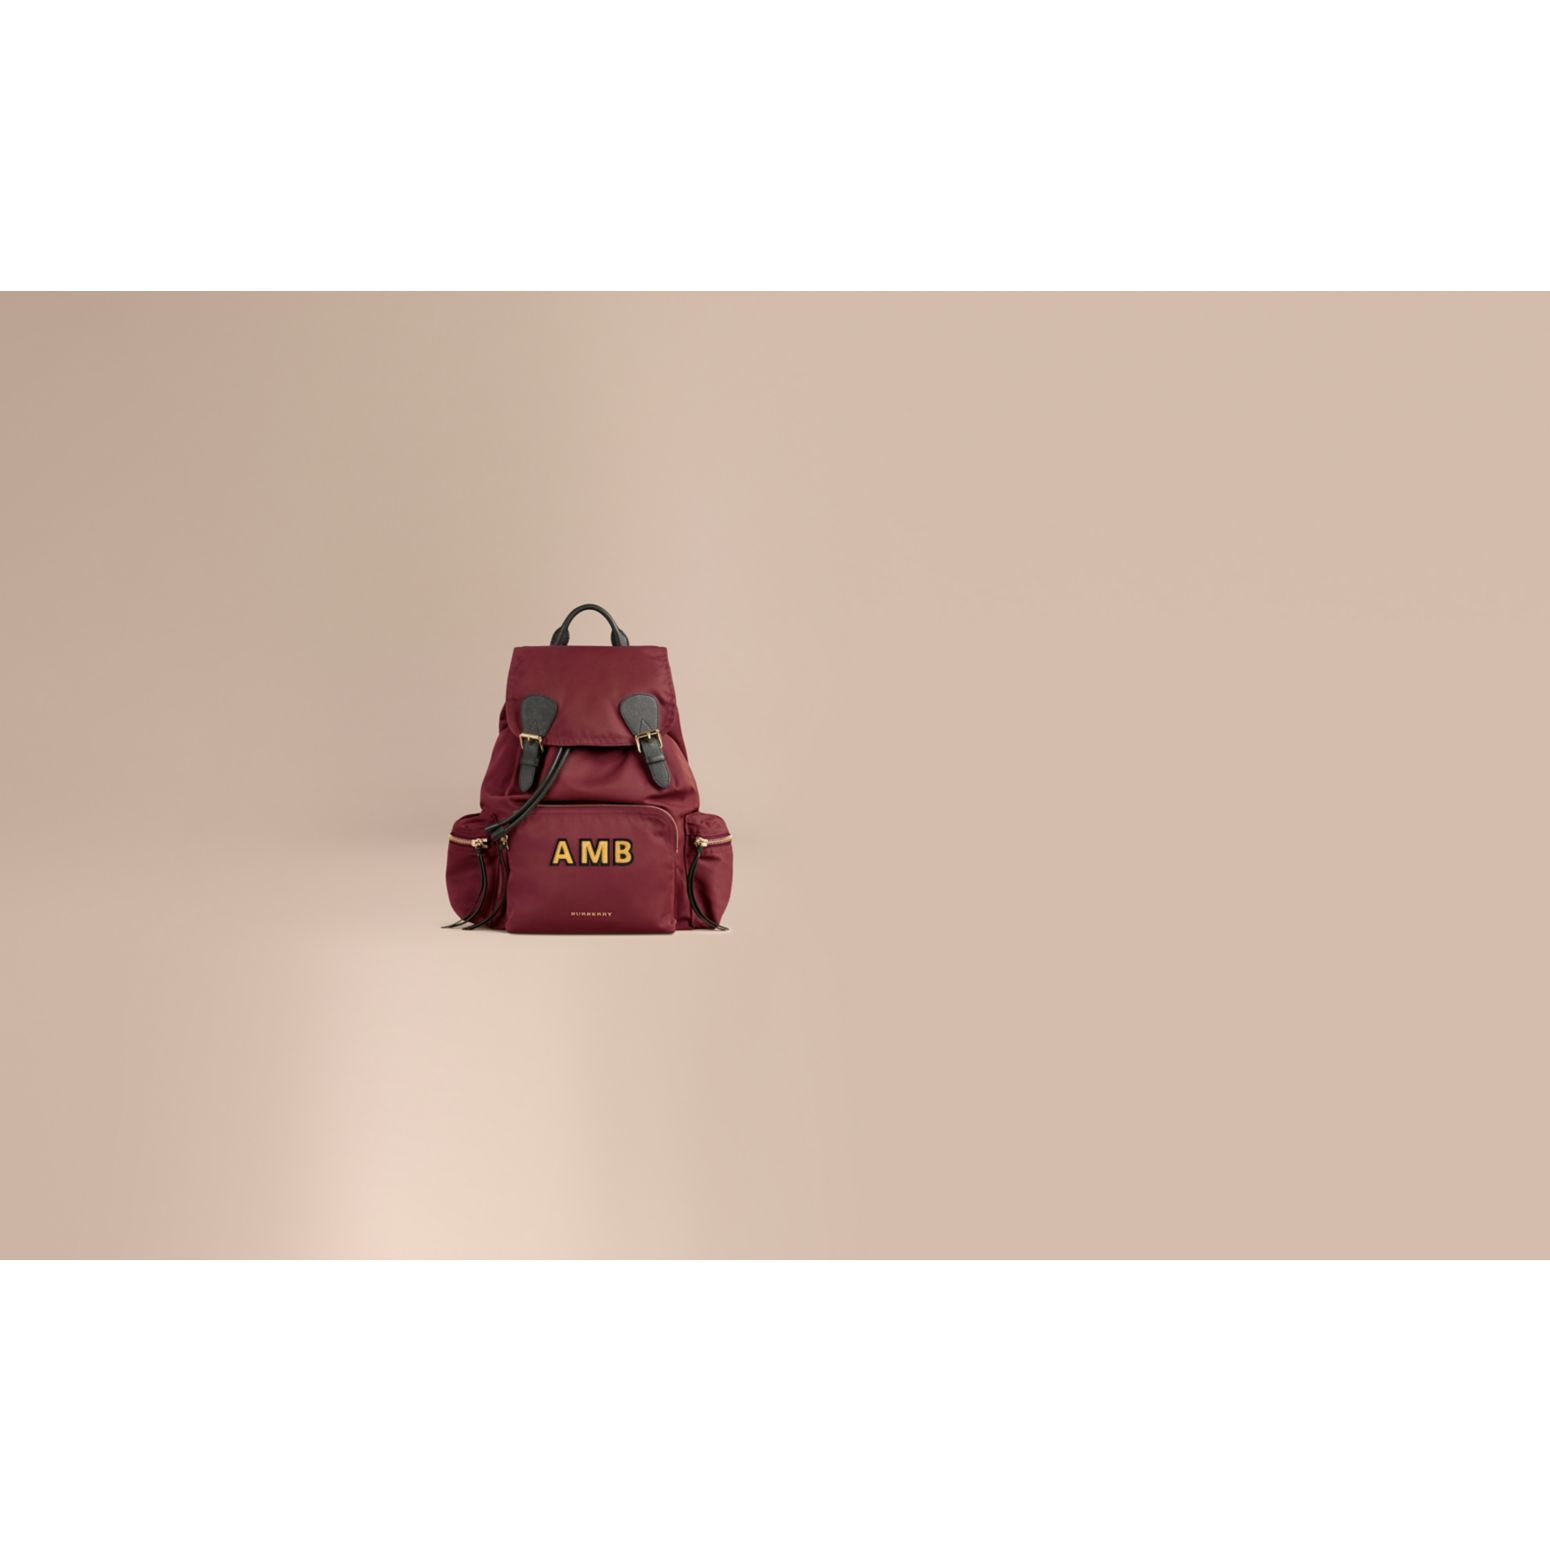 Burgundy red The Large Rucksack in Technical Nylon and Leather Burgundy Red - gallery image 2